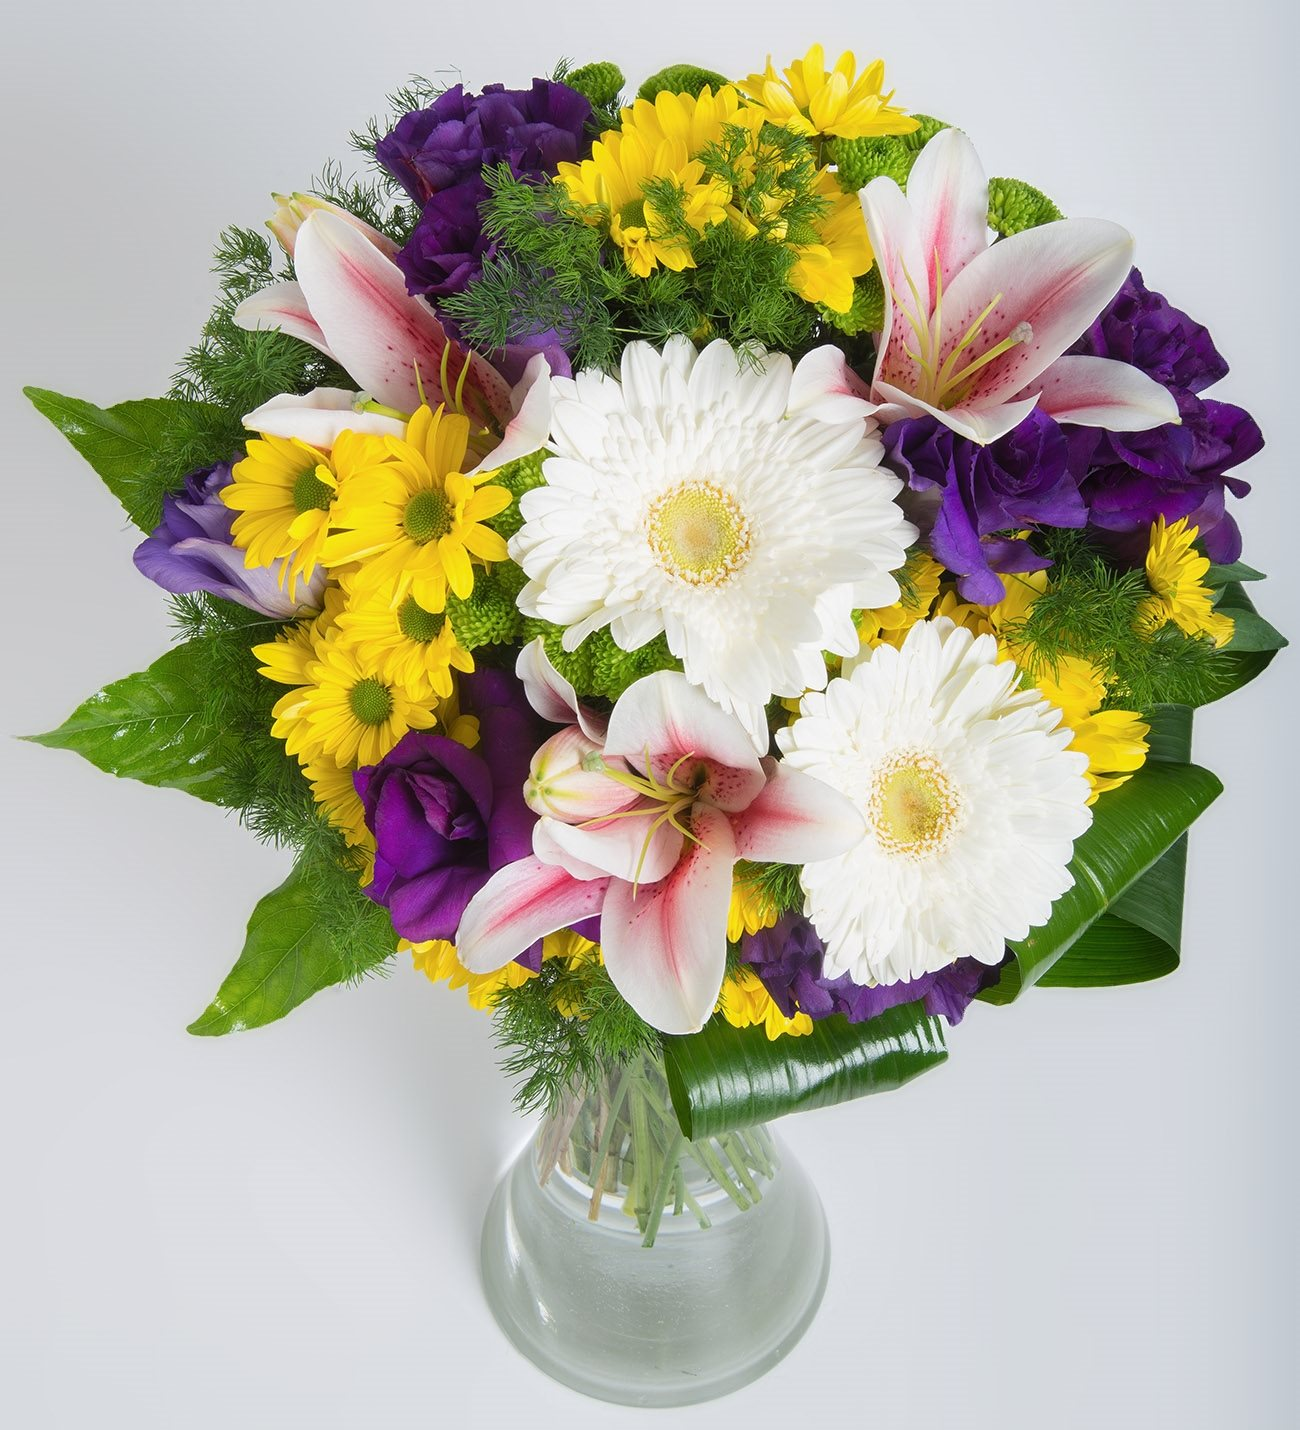 Lilies Gerberas Lisianthus And Daisies Symphony Of Colors